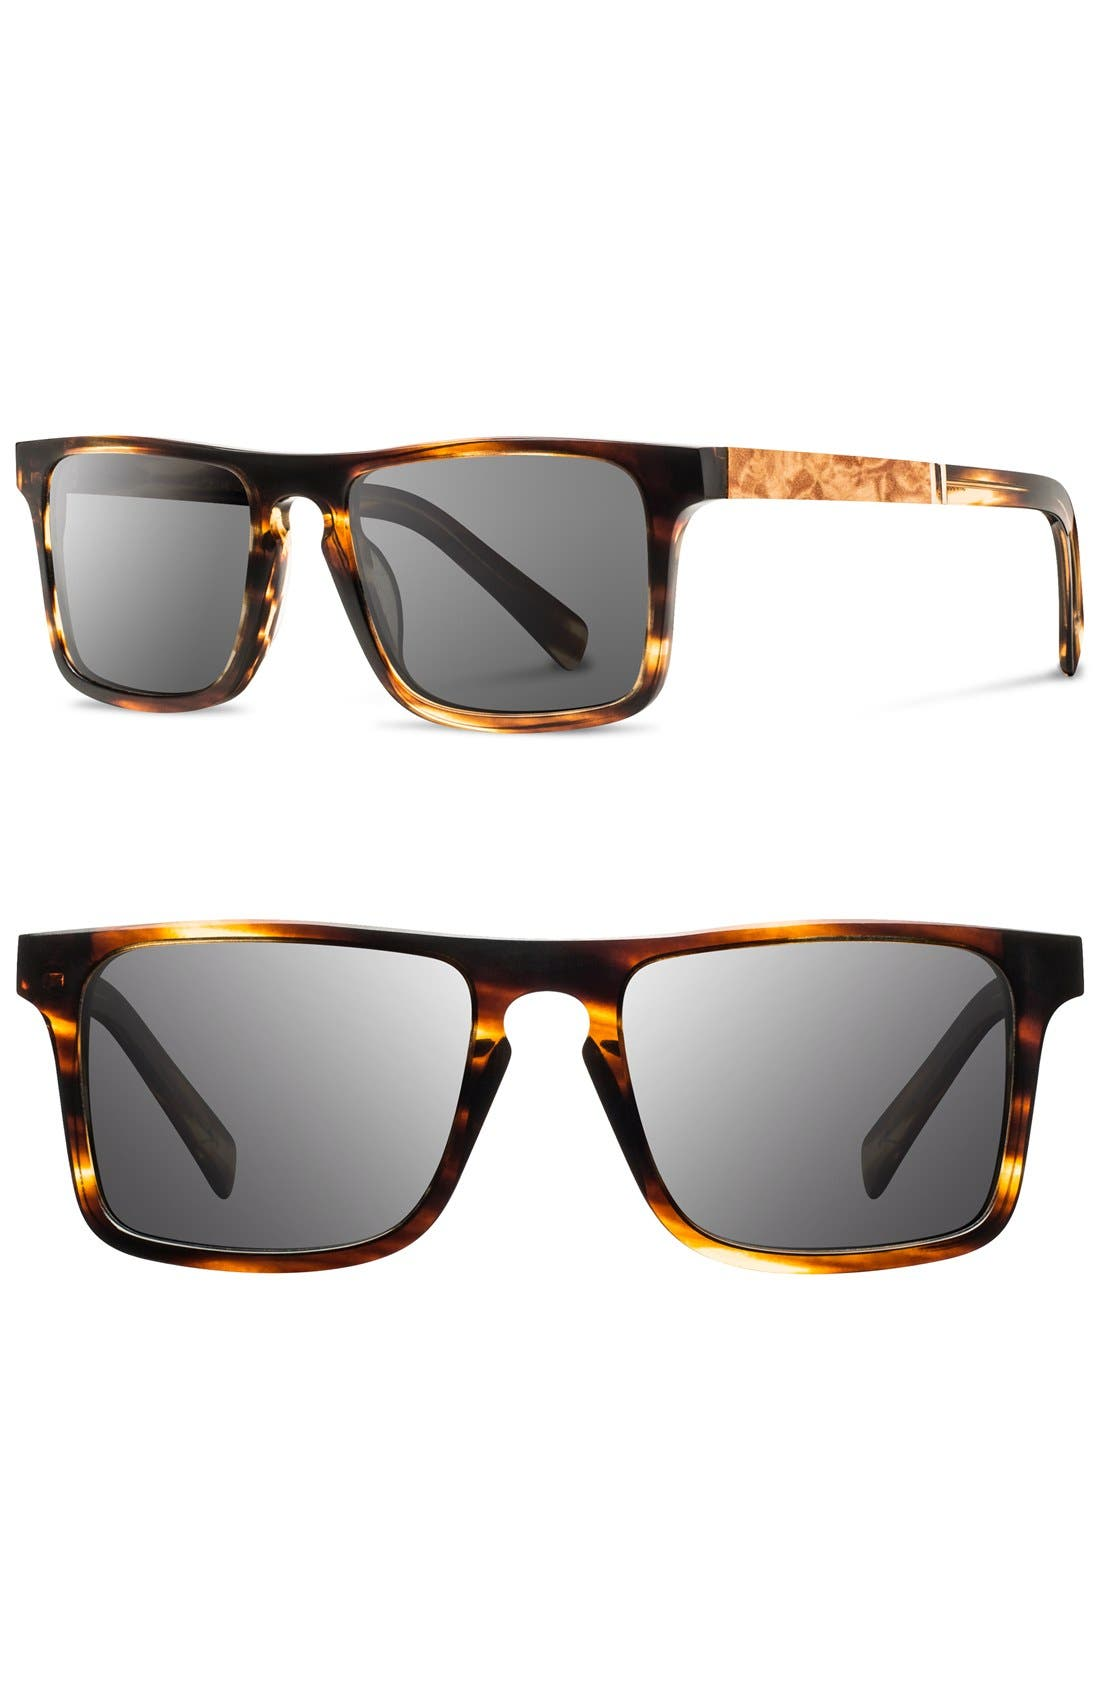 Alternate Image 1 Selected - Shwood 'Govy' 52mm Wood Sunglasses